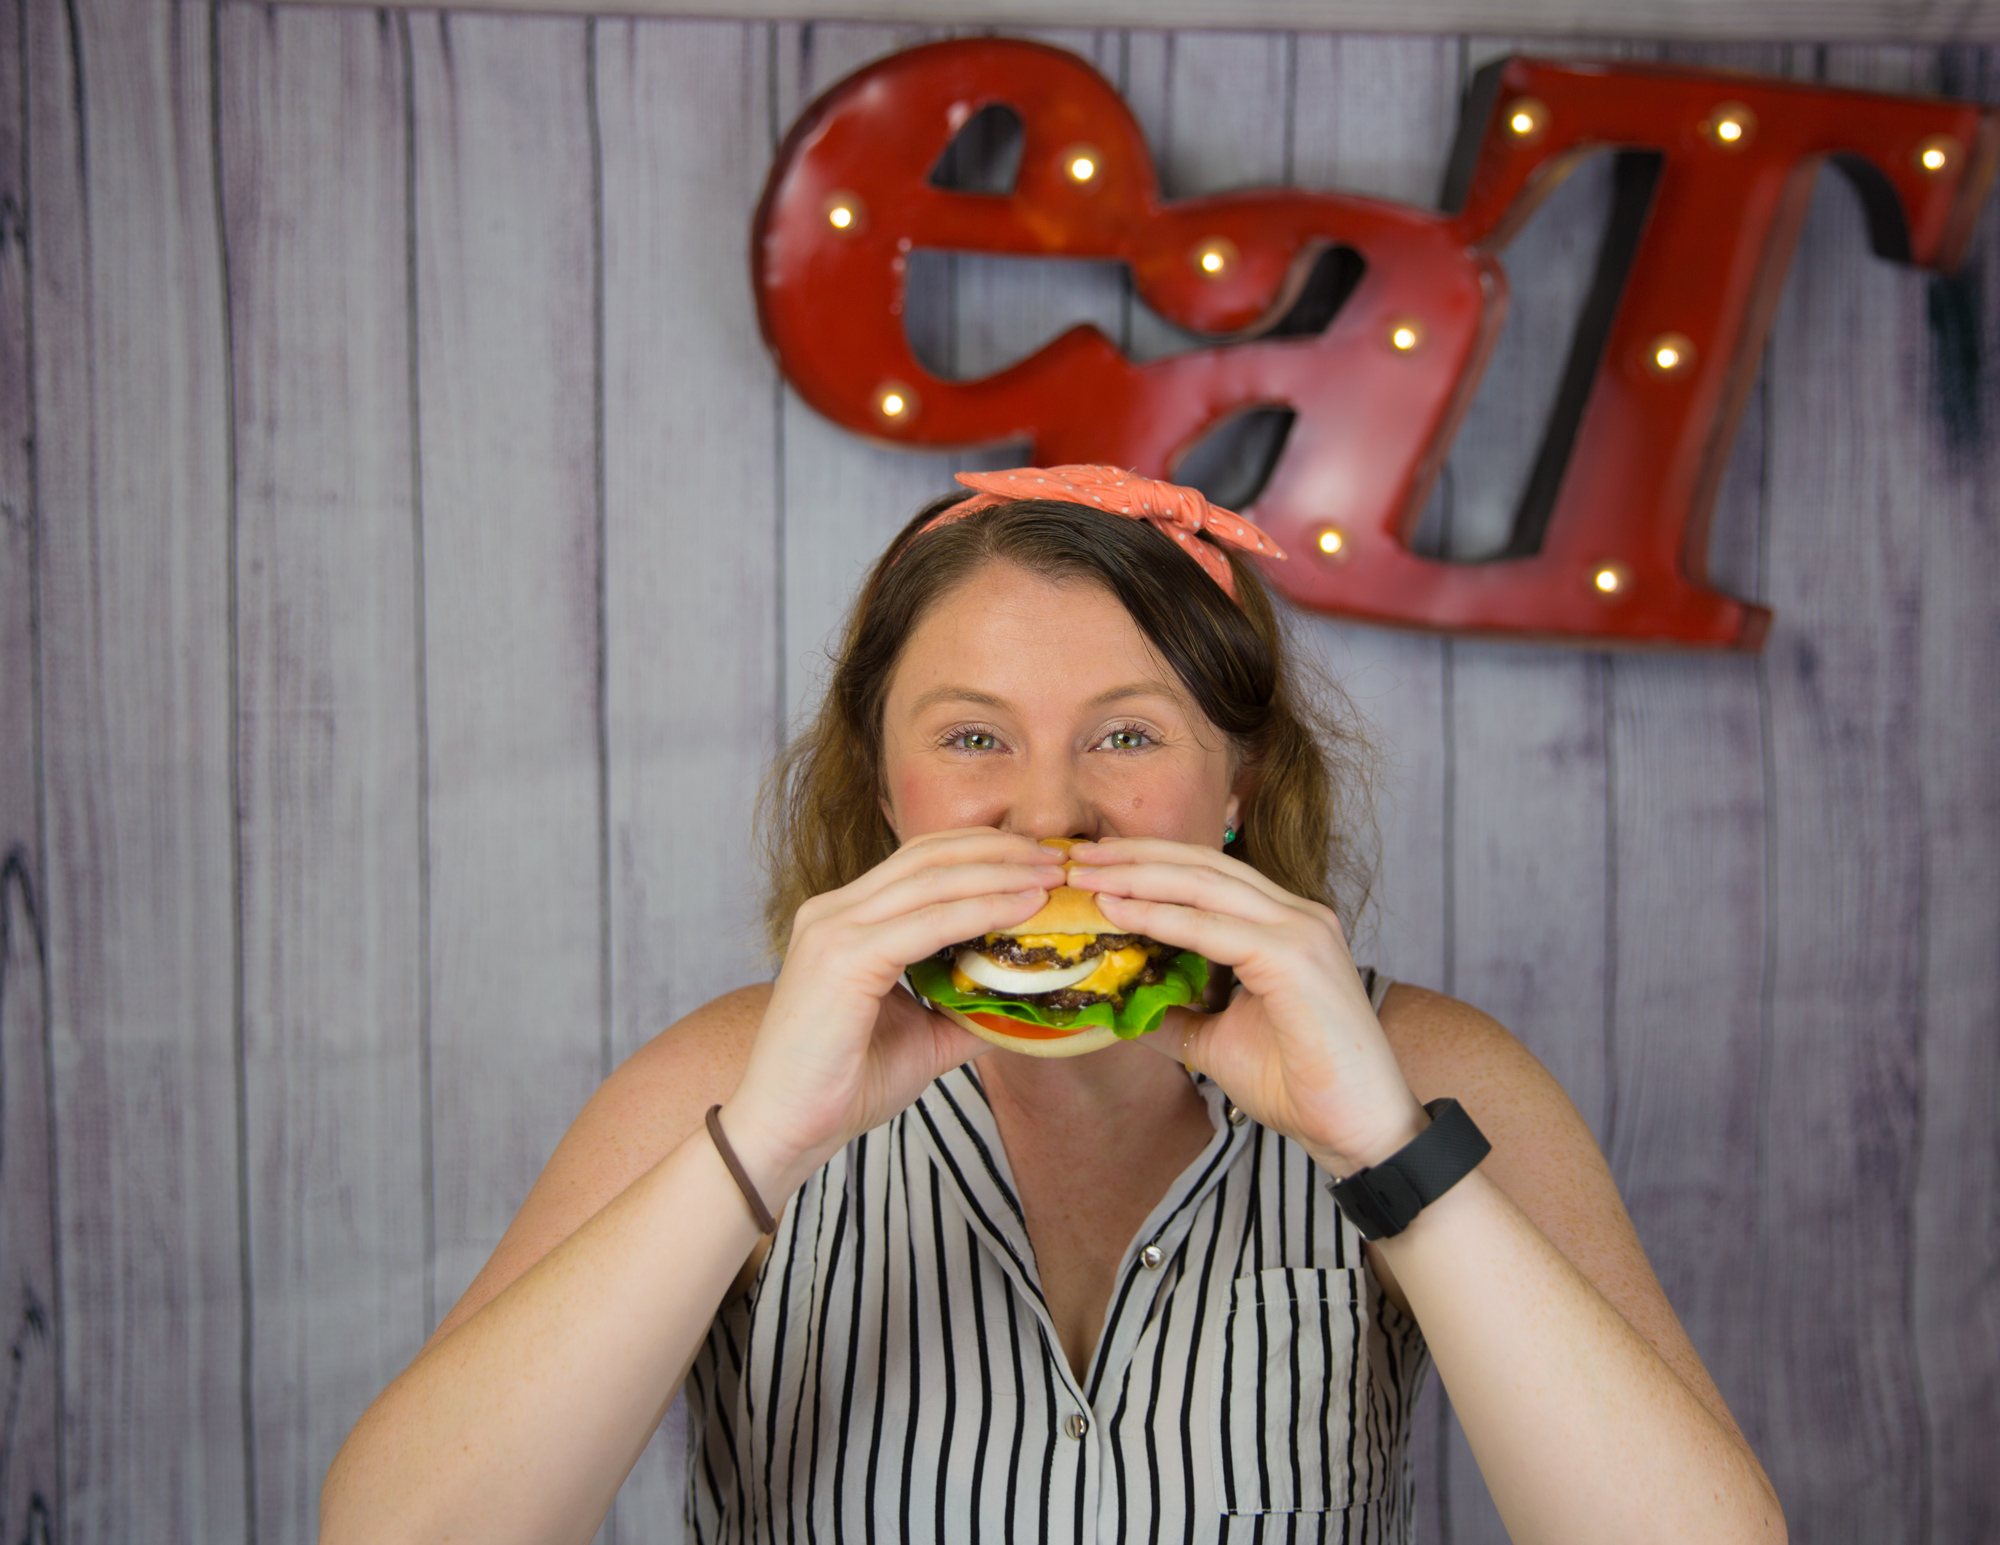 My recreation of In-N-Out's famous 'Double Double' burger, modelled by a friend.  For News.com.au, March 2016.